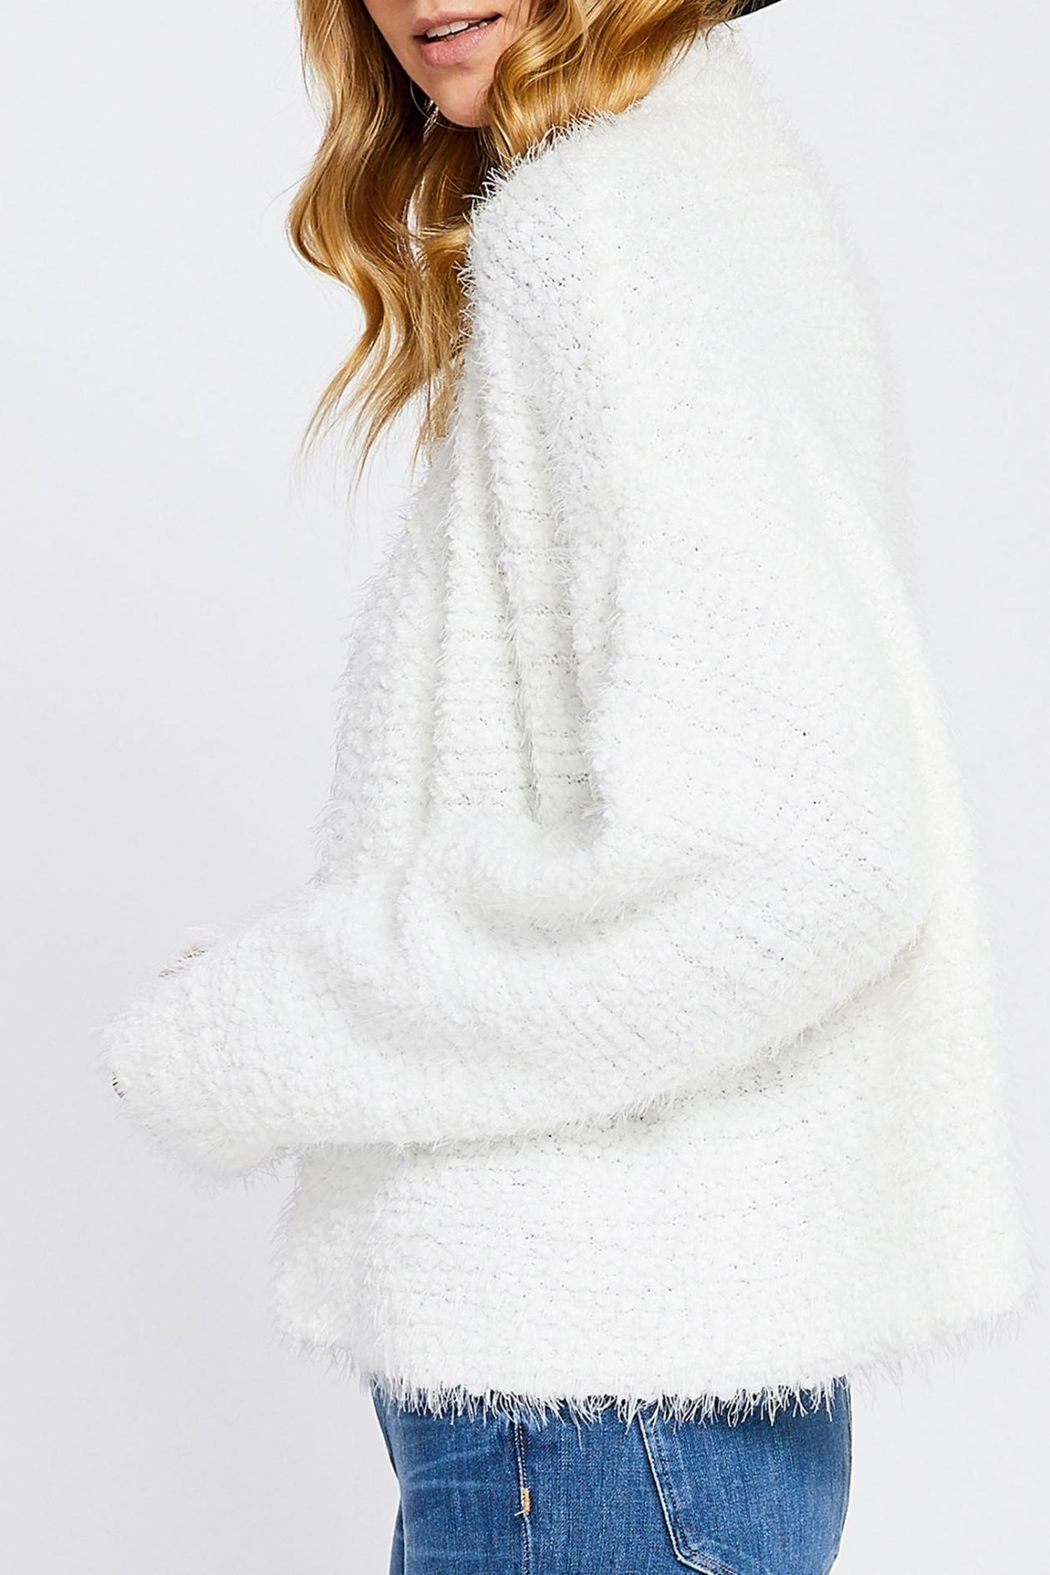 952d1e3a3520 Gentle Fawn Fuzzy White Cardigan from Ontario by Steel Style Garage ...